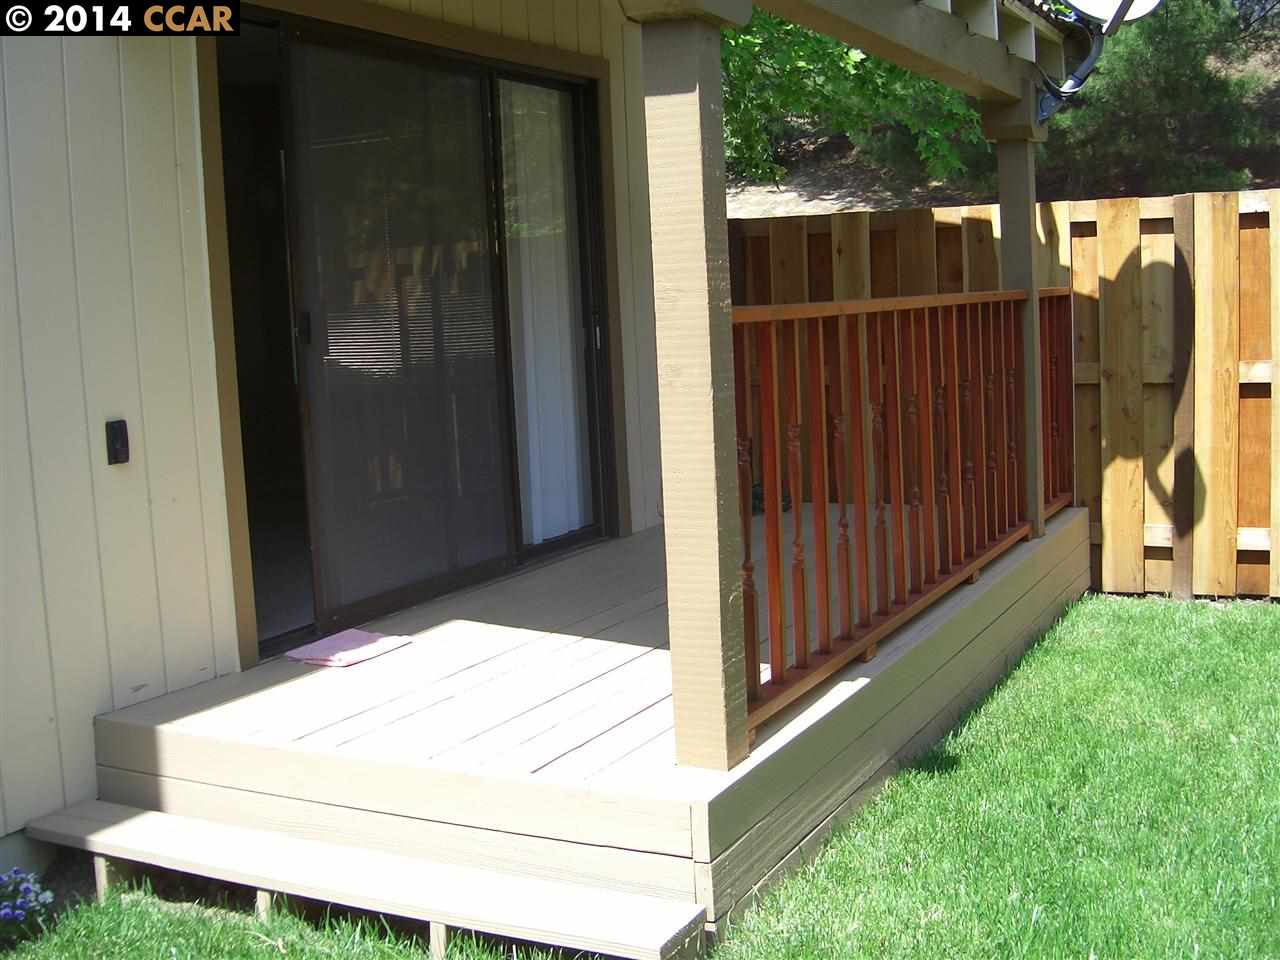 Additional photo for property listing at 10 HILL Court  Hercules, カリフォルニア 94547 アメリカ合衆国